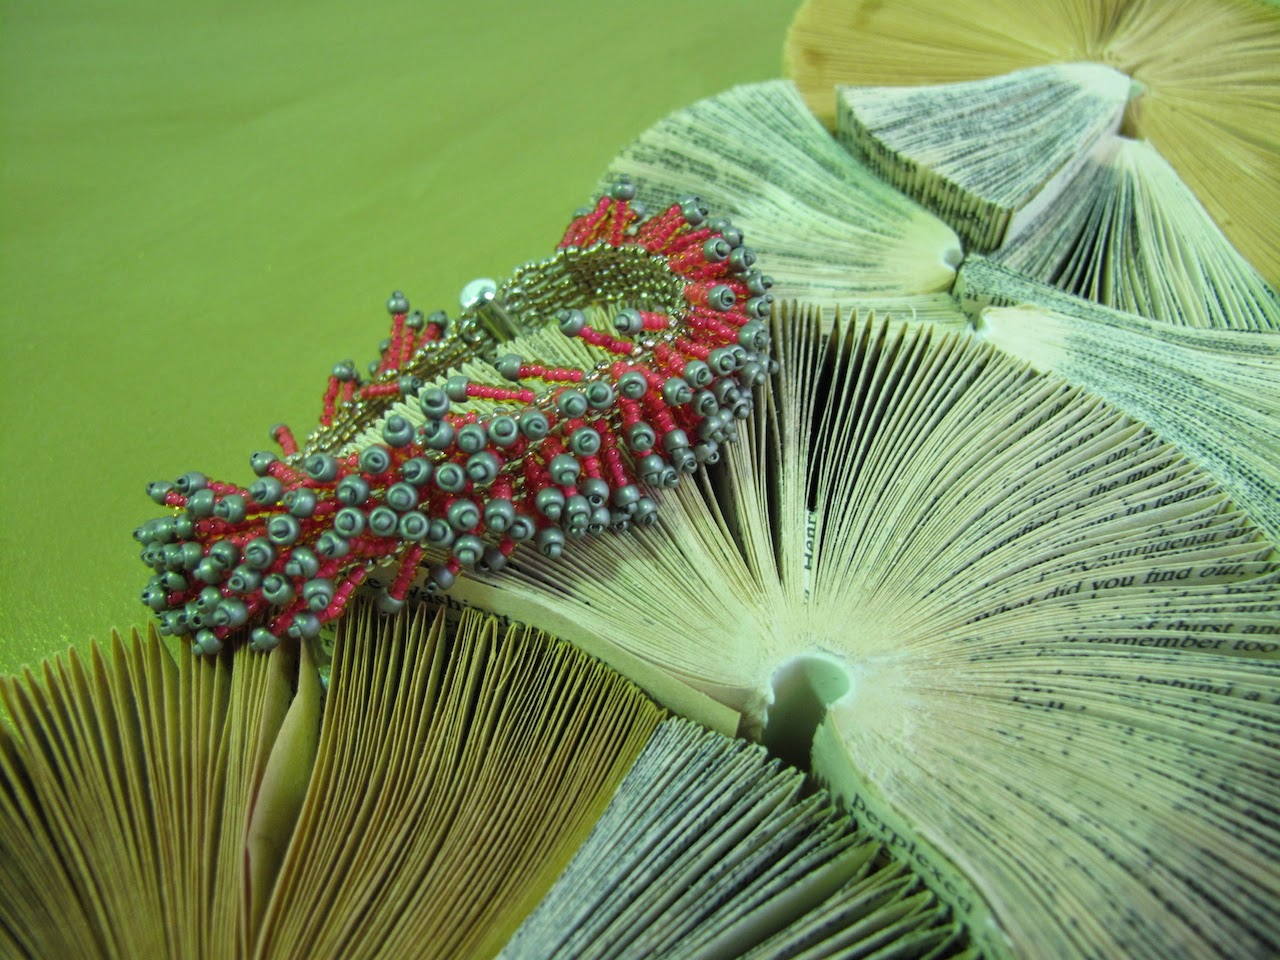 Beloved Beadwork meets Simple Intrigue Book Art